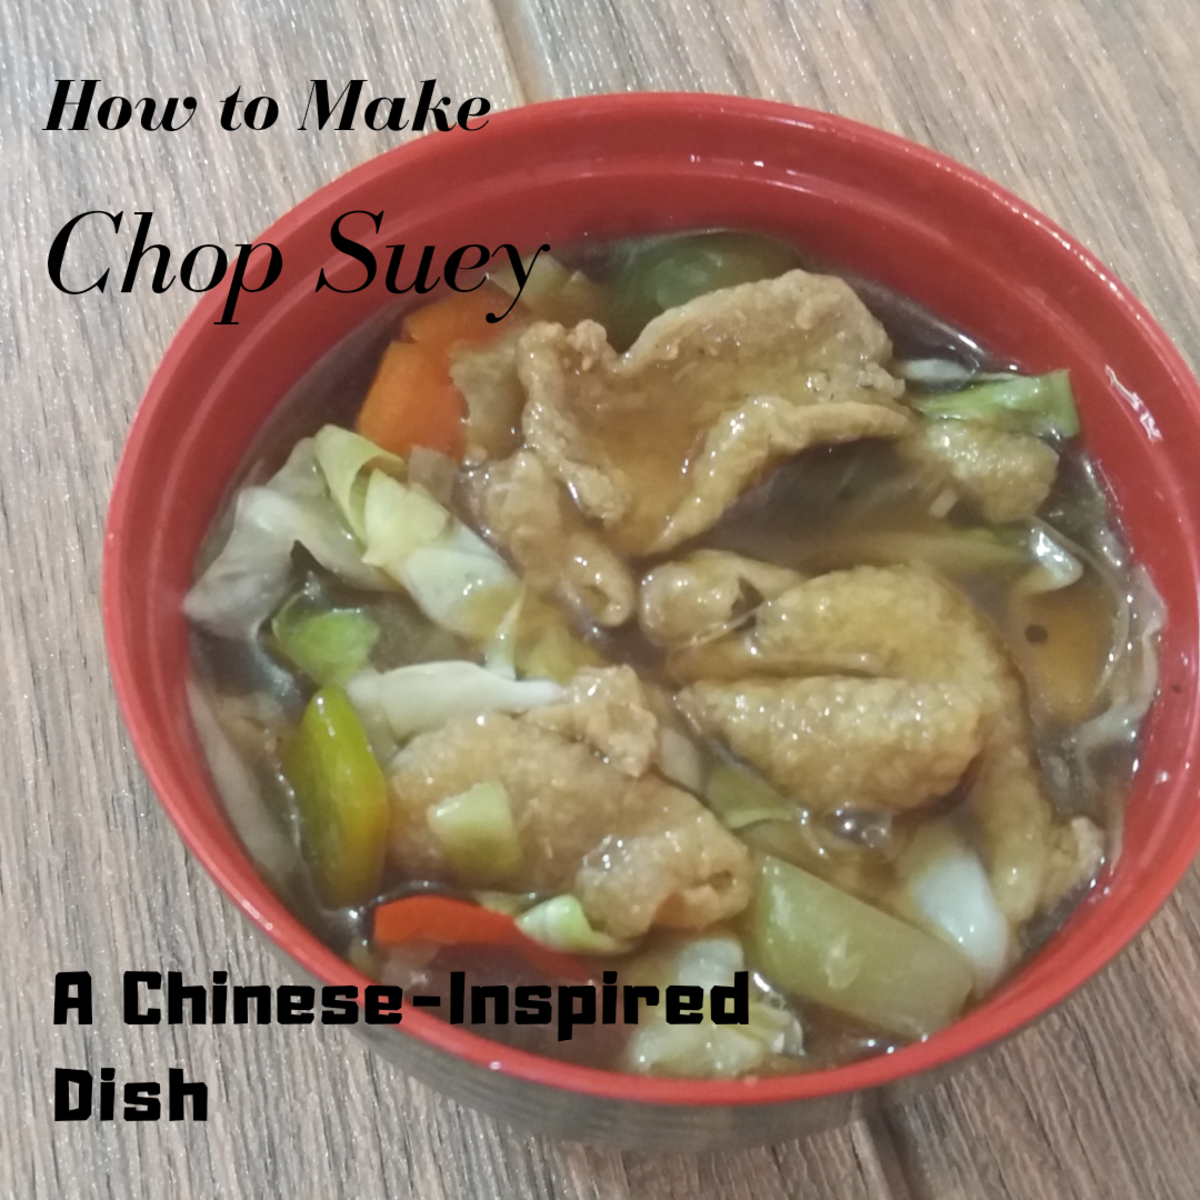 How to make chop suey, a Chinese-inspired dish.